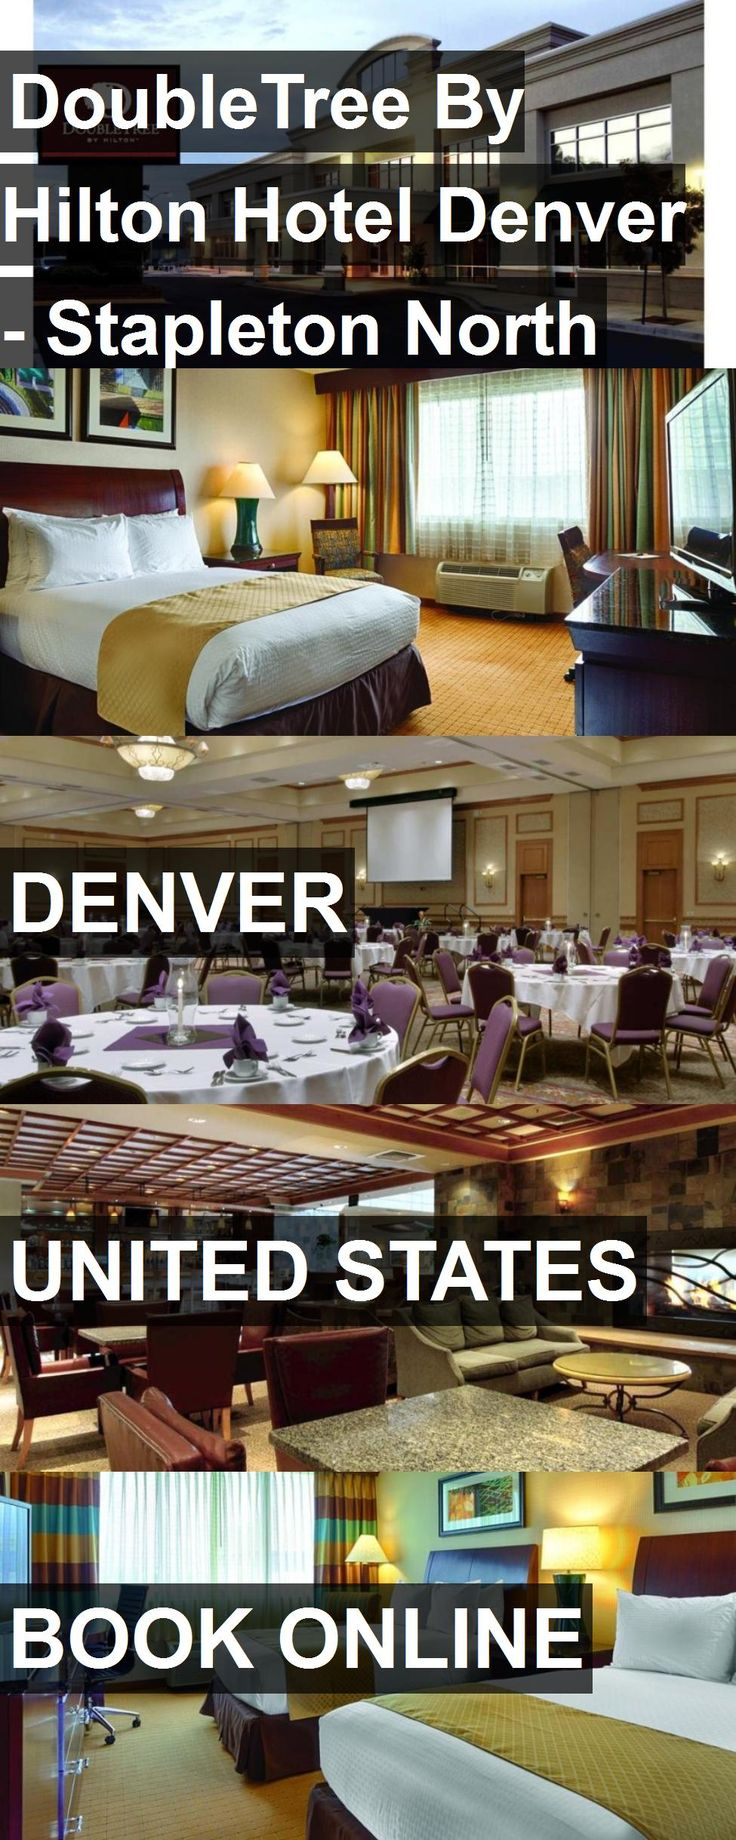 DoubleTree By Hilton Hotel Denver - Stapleton North in Denver, United States. For more information, photos, reviews and best prices please follow the link. #UnitedStates #Denver #travel #vacation #hotel